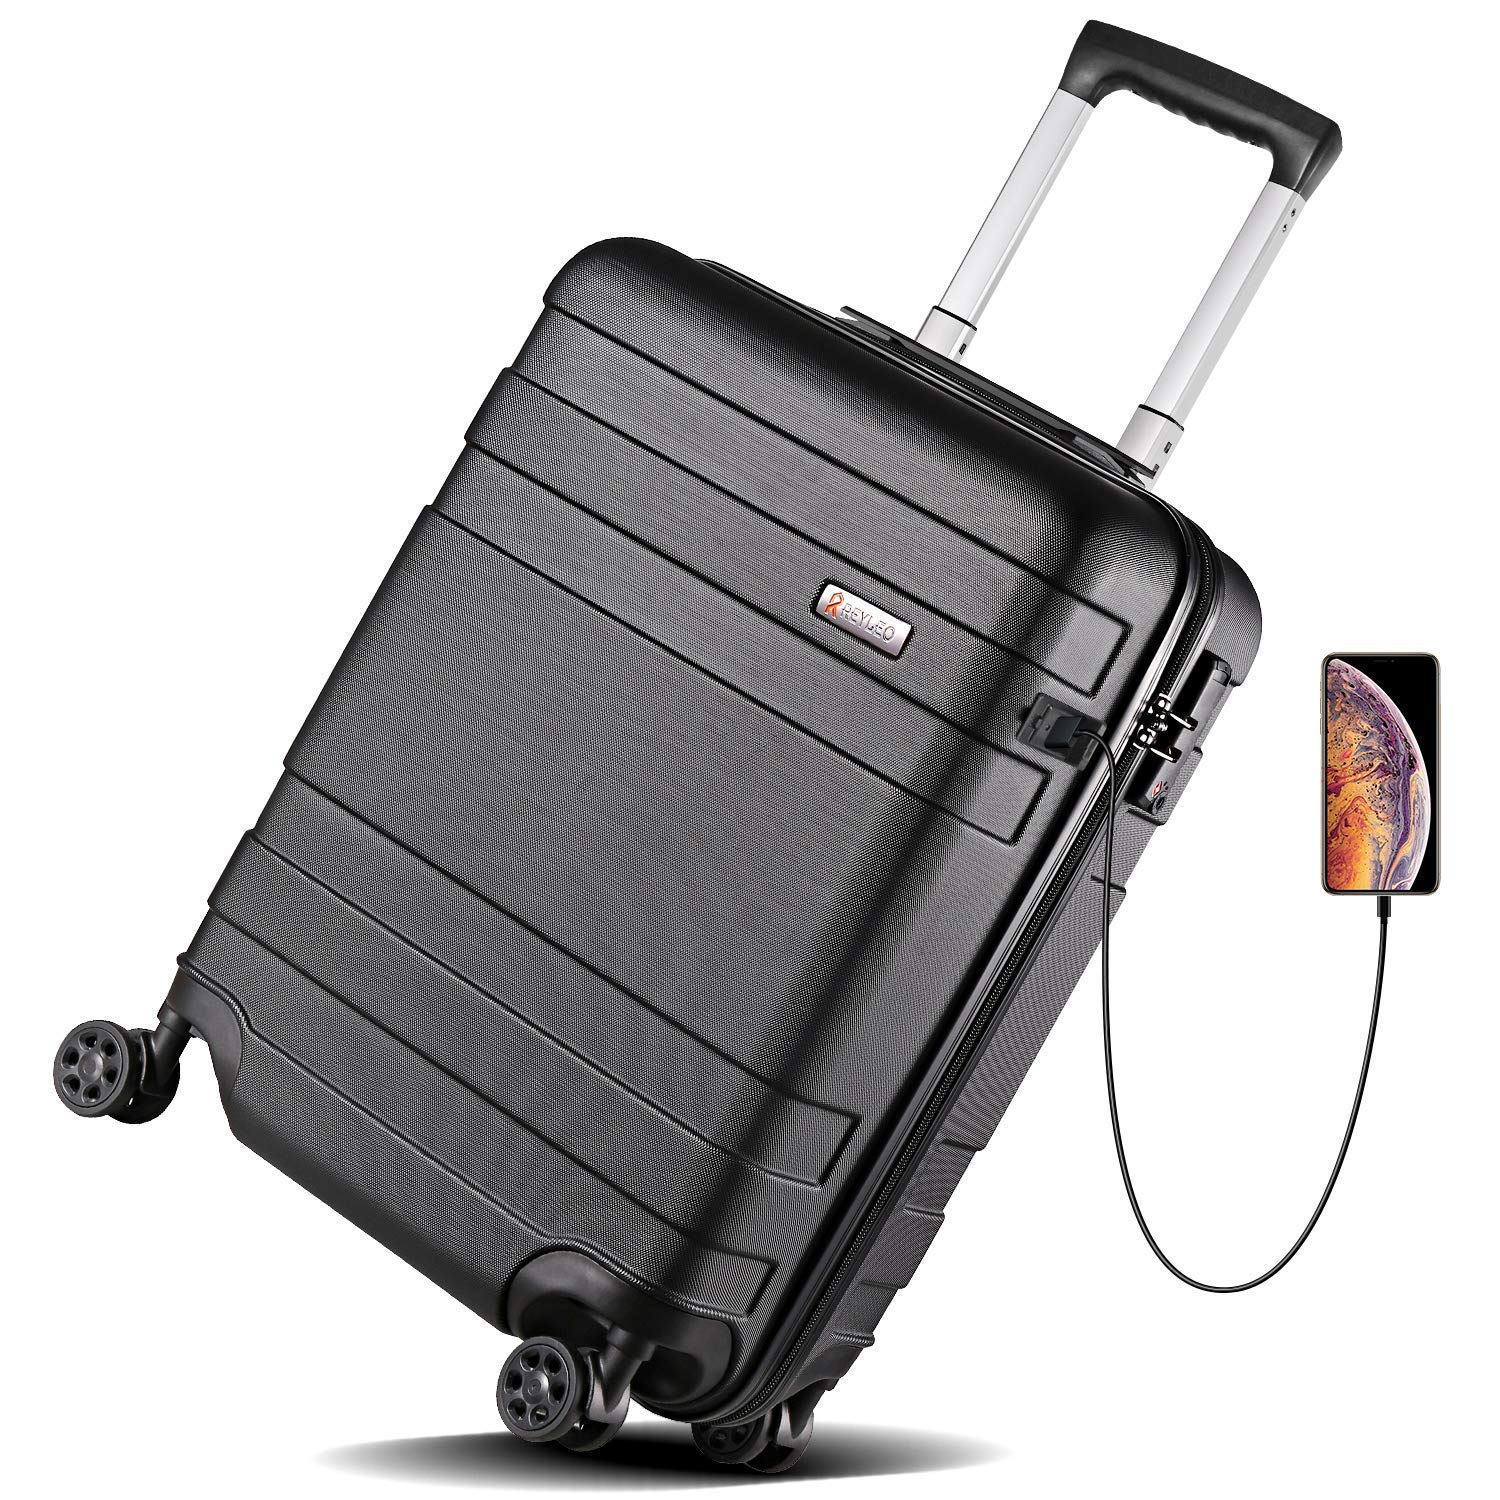 REYLEO Hardside Luggage 21 Inch Carry On Luggage 4-level Handle Travel Suitcase with Two USB Charging Port 8 Silent Spinner Wheels Built-in TSA Lock, ...